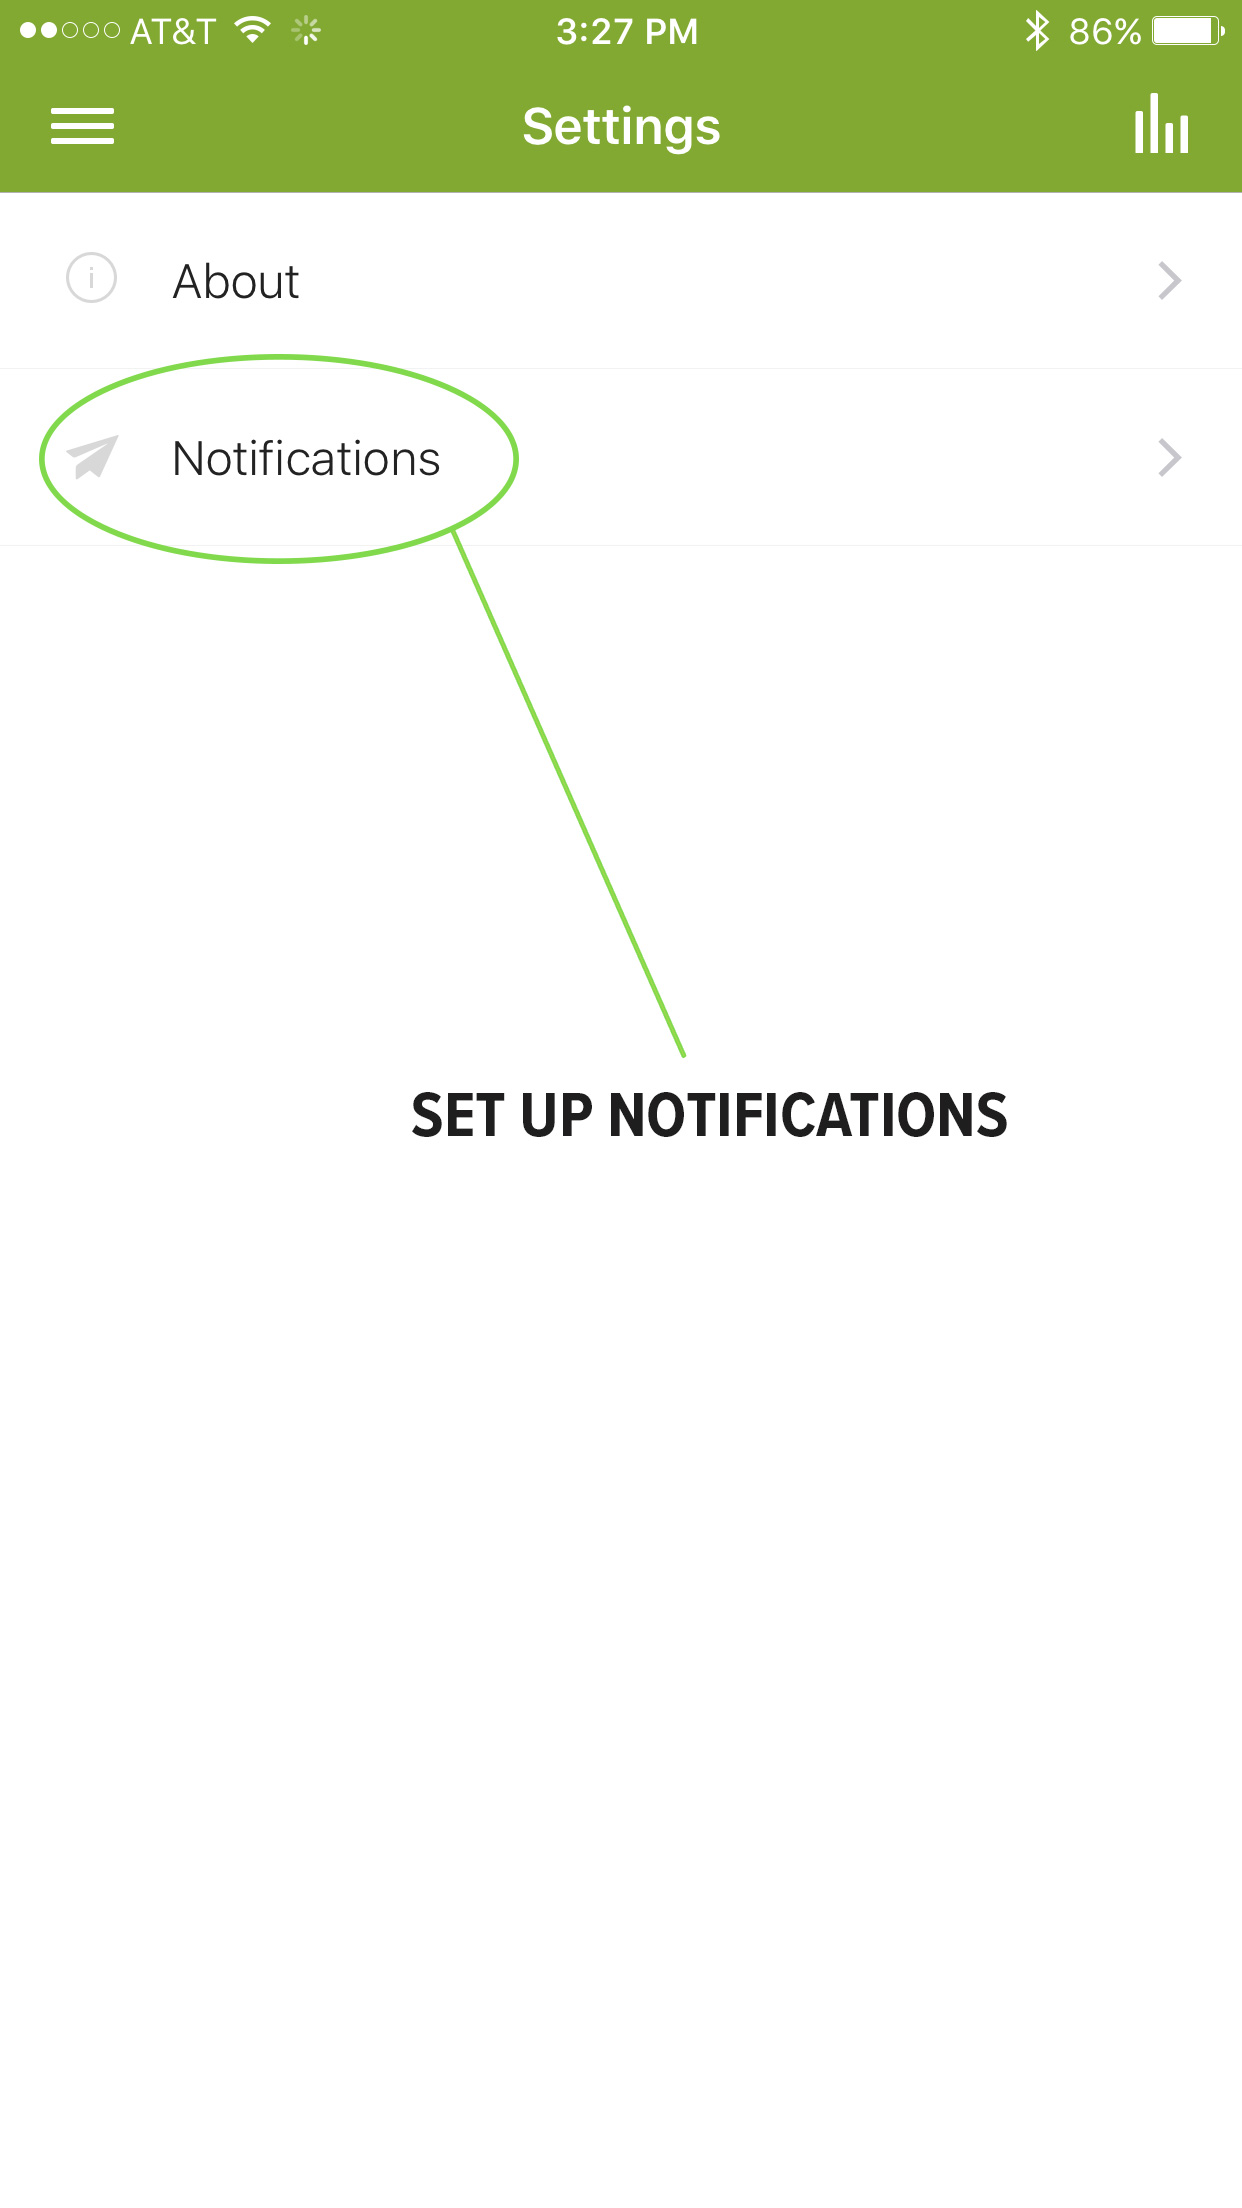 2. Select Notifications